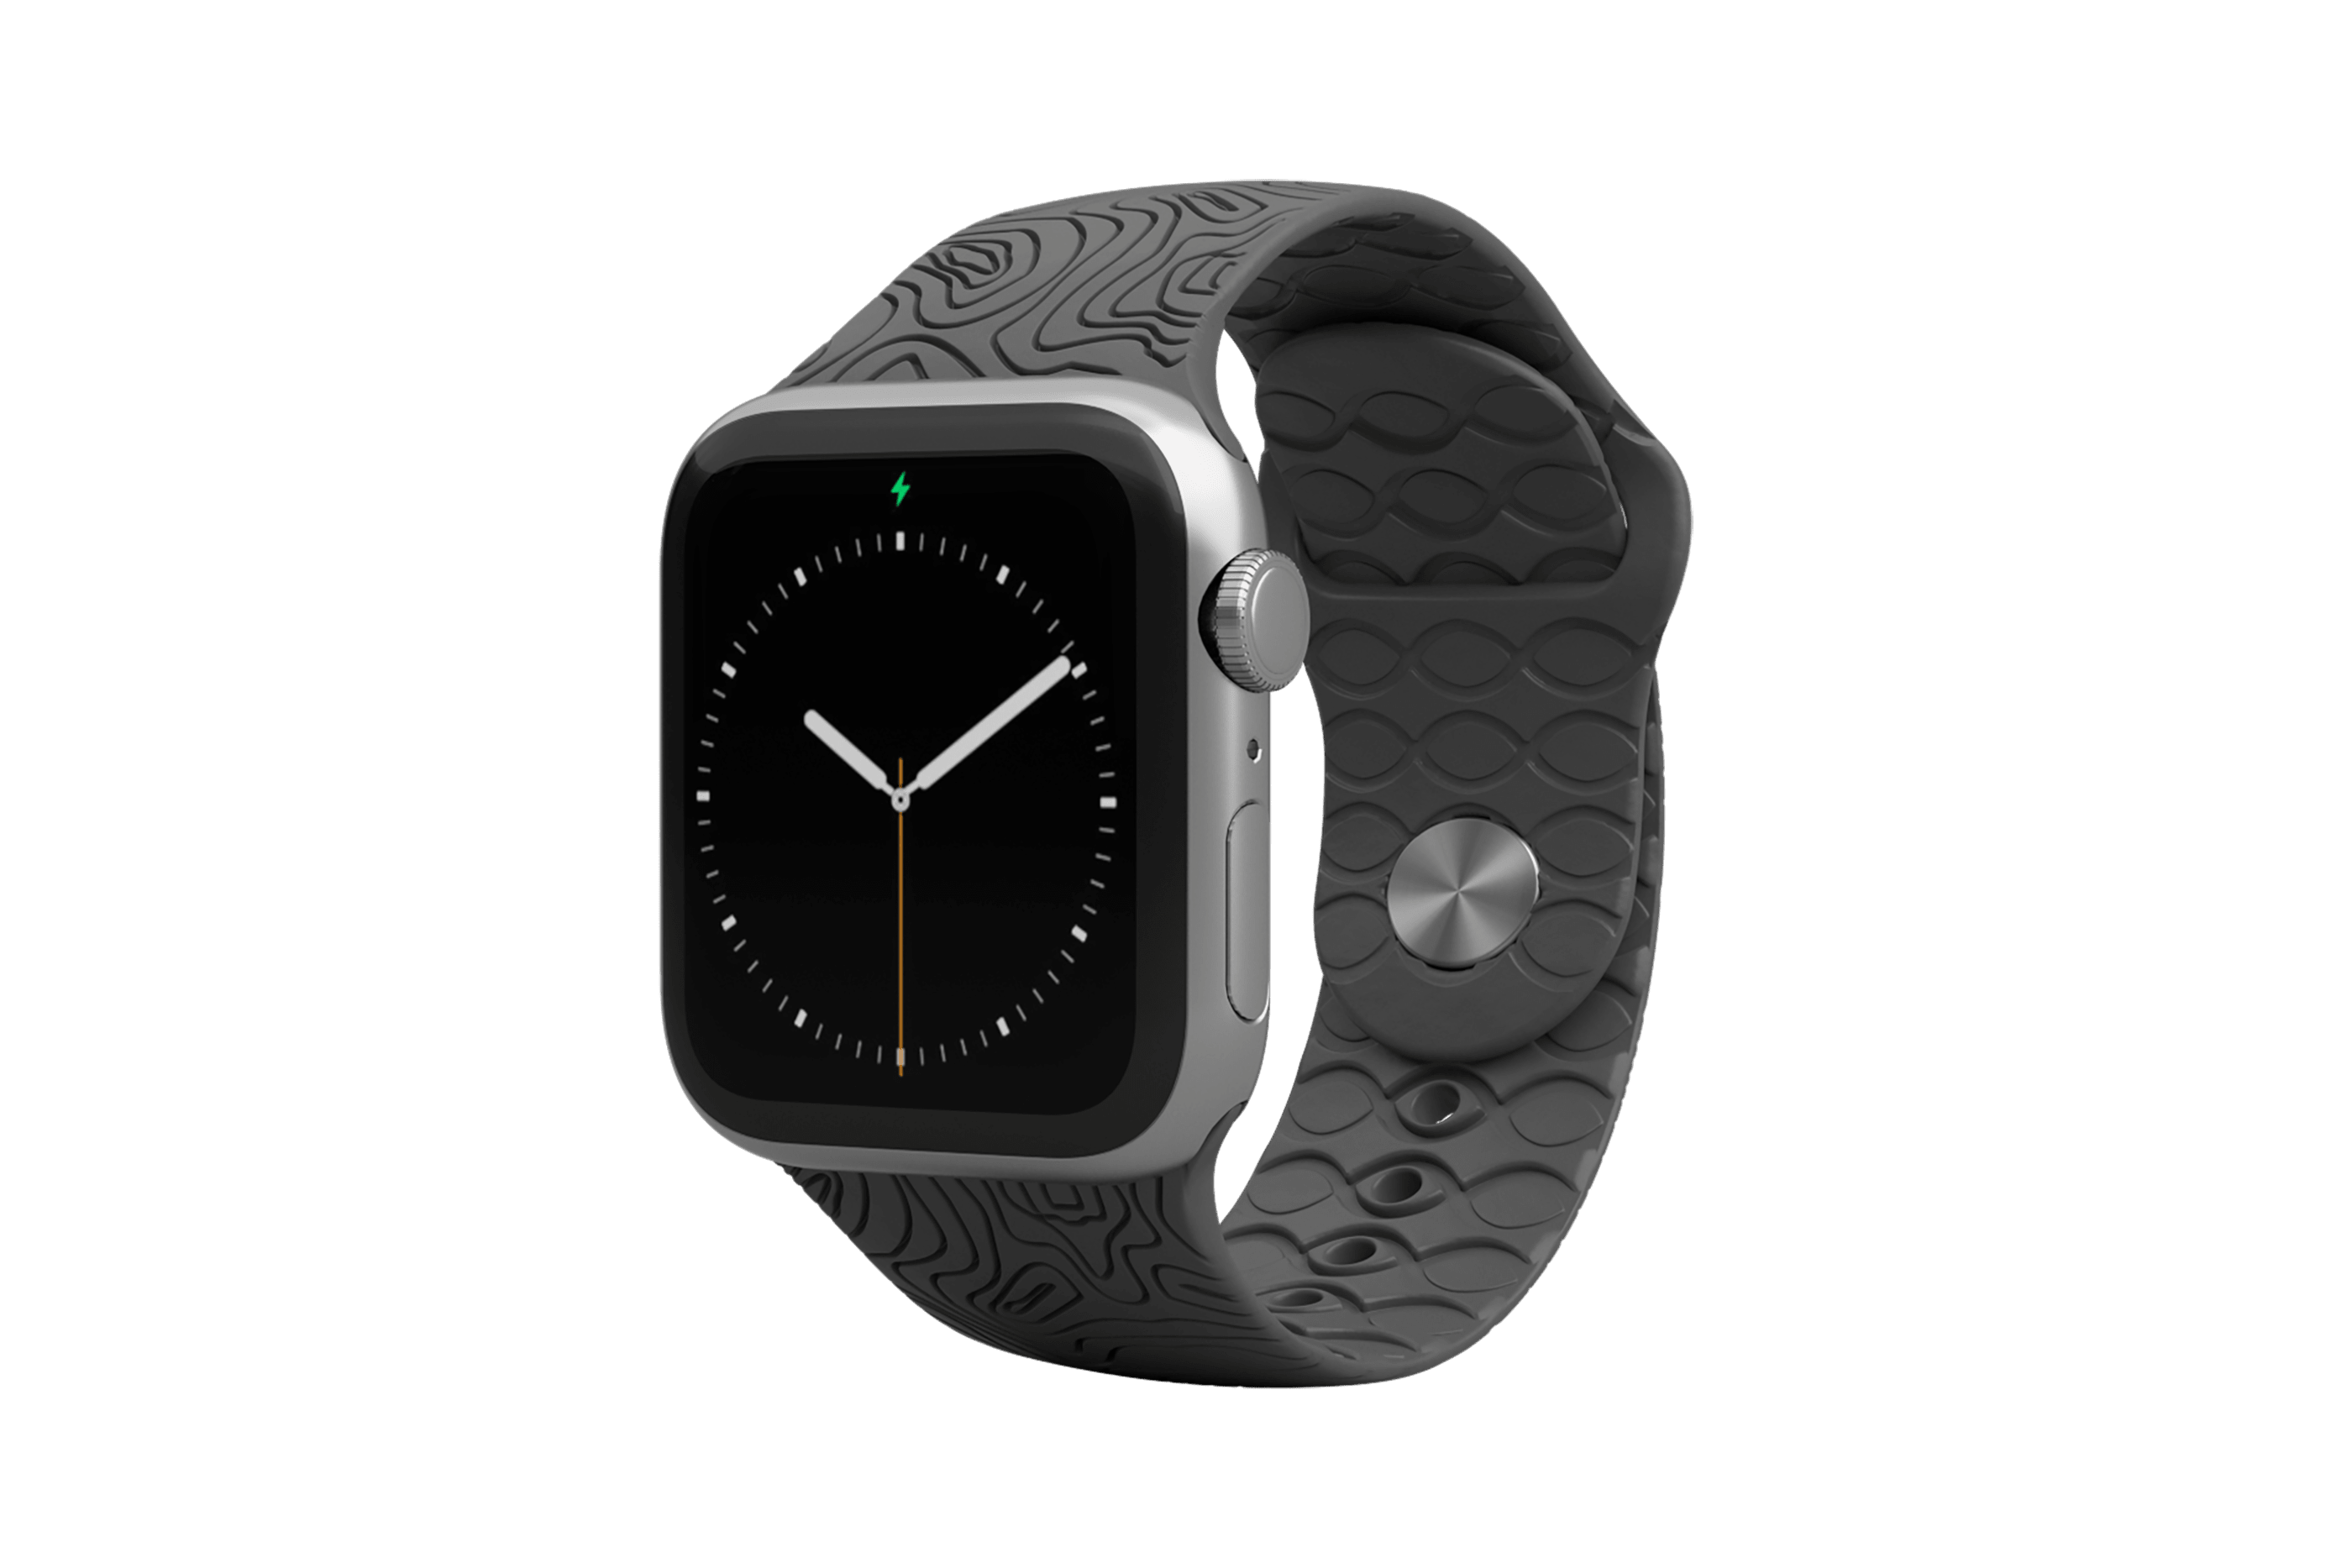 Apple Watch Band Dimension Topo Deep Stone Grey with silver hardware viewed front on